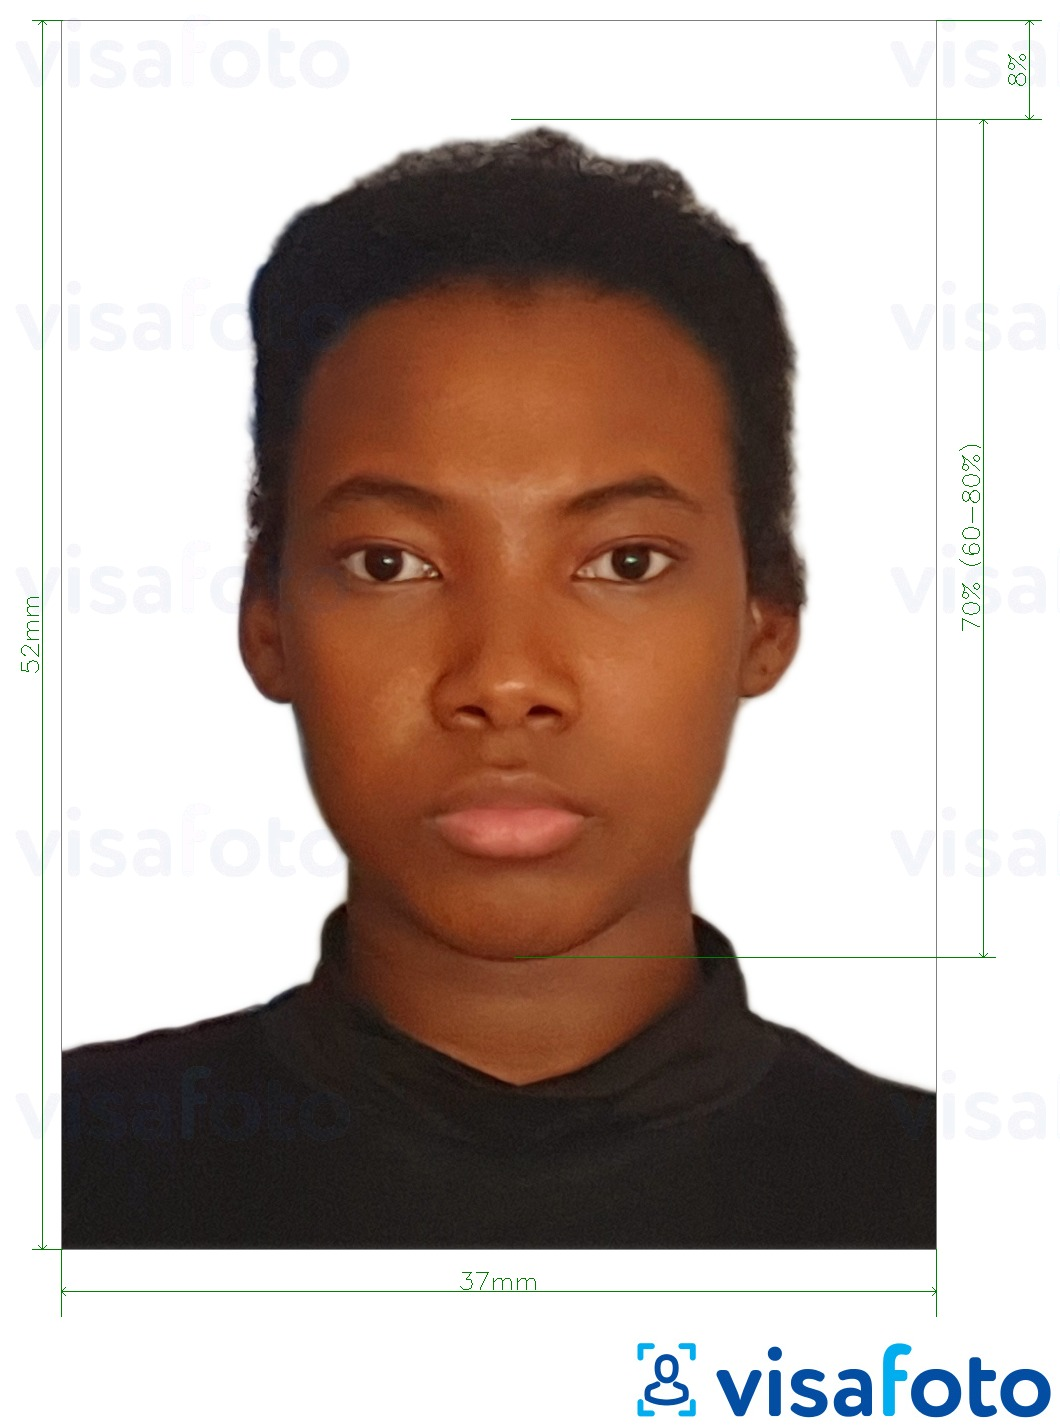 Example of photo for Namibia visa 37x52mm (3.7x5.2 cm) with exact size specification